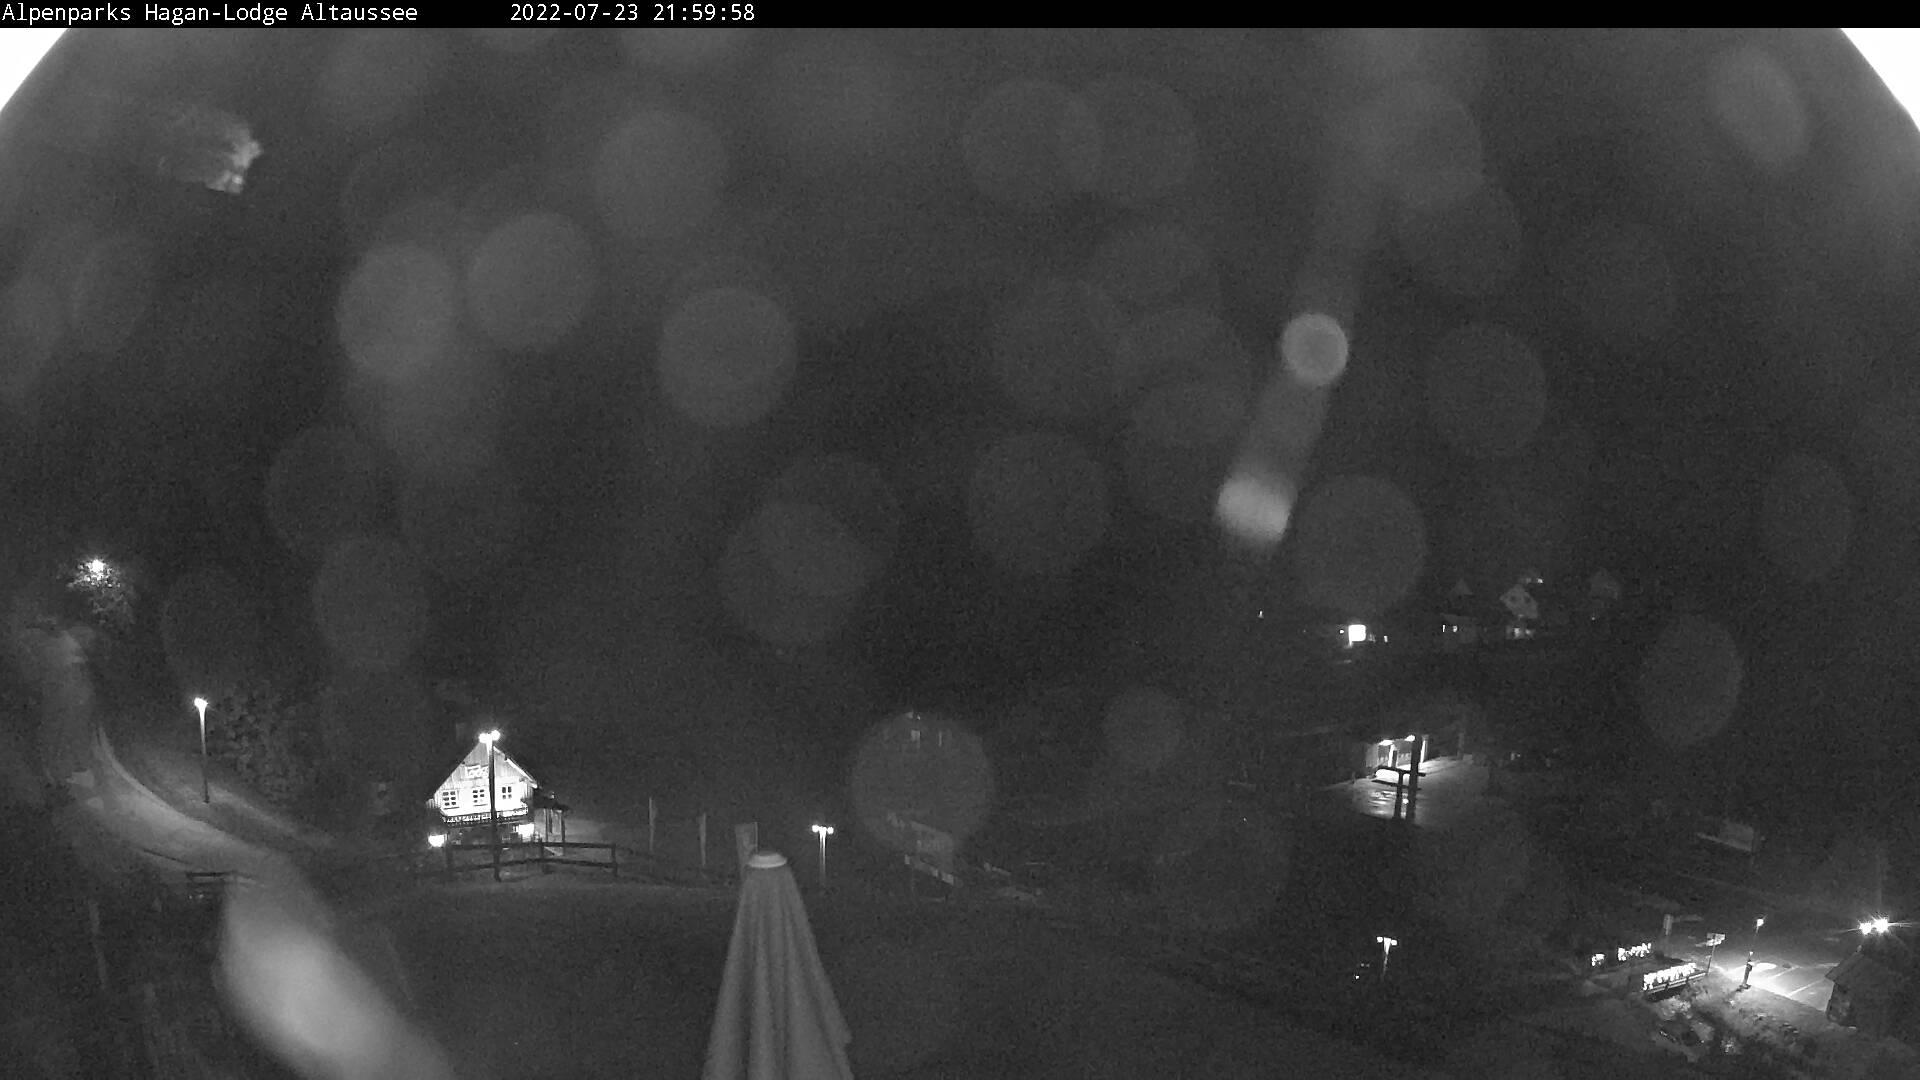 Webcam Hinterposern: AlpenParks Lodge GmbH - AlpenParks H